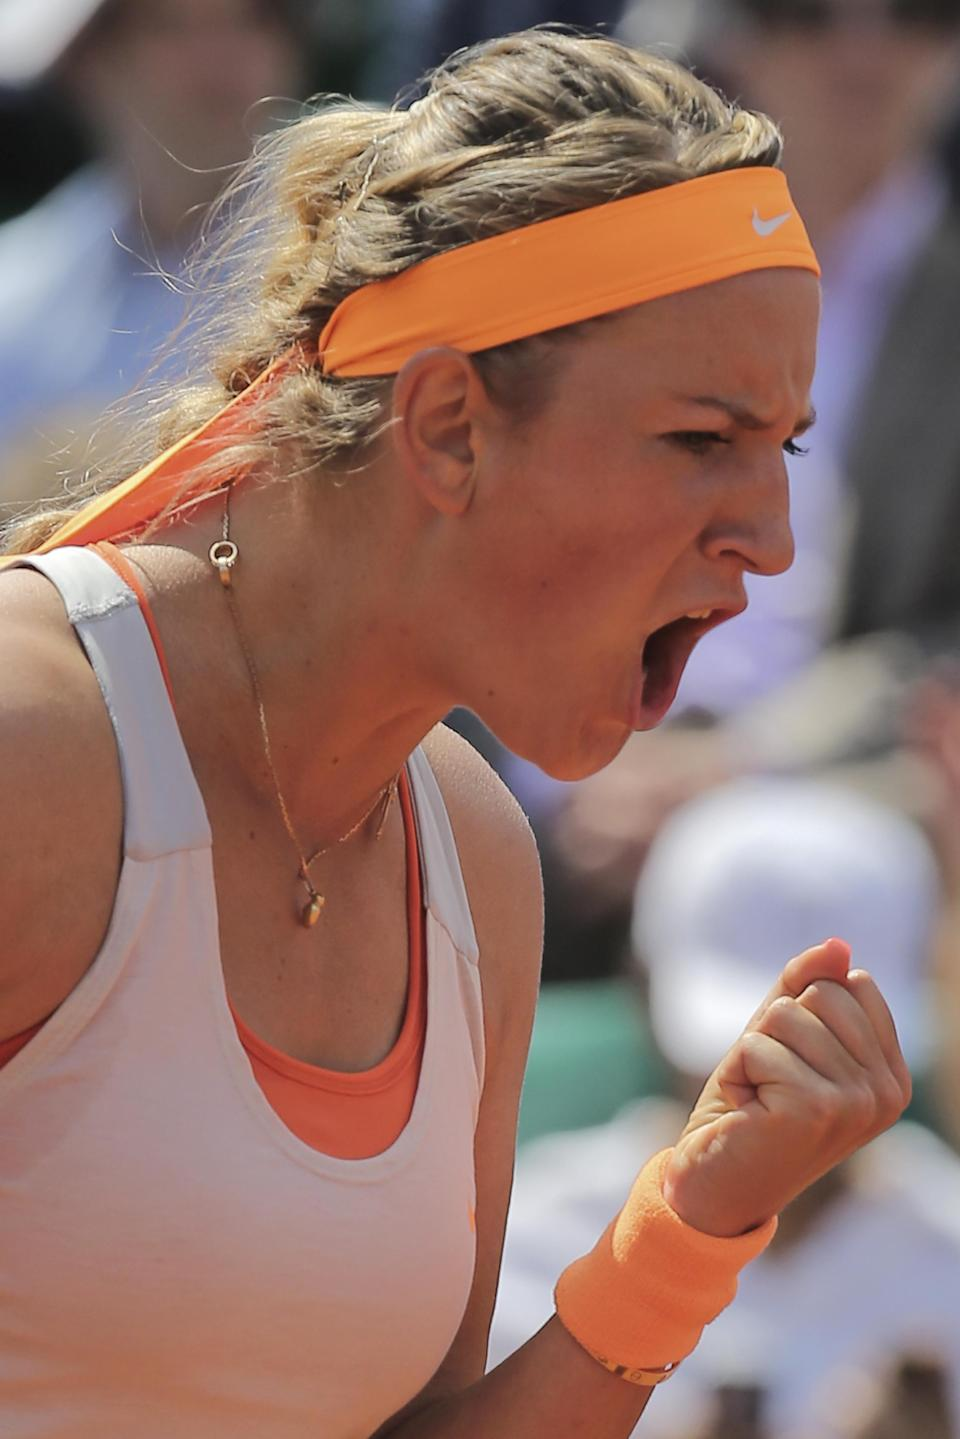 Victoria Azarenka of Belarus celebrates scoring against Russia's Maria Kirilenko in their quarterfinal match at the French Open tennis tournament, at Roland Garros stadium in Paris, Wednesday June 5, 2013. (AP Photo/Michel Euler)